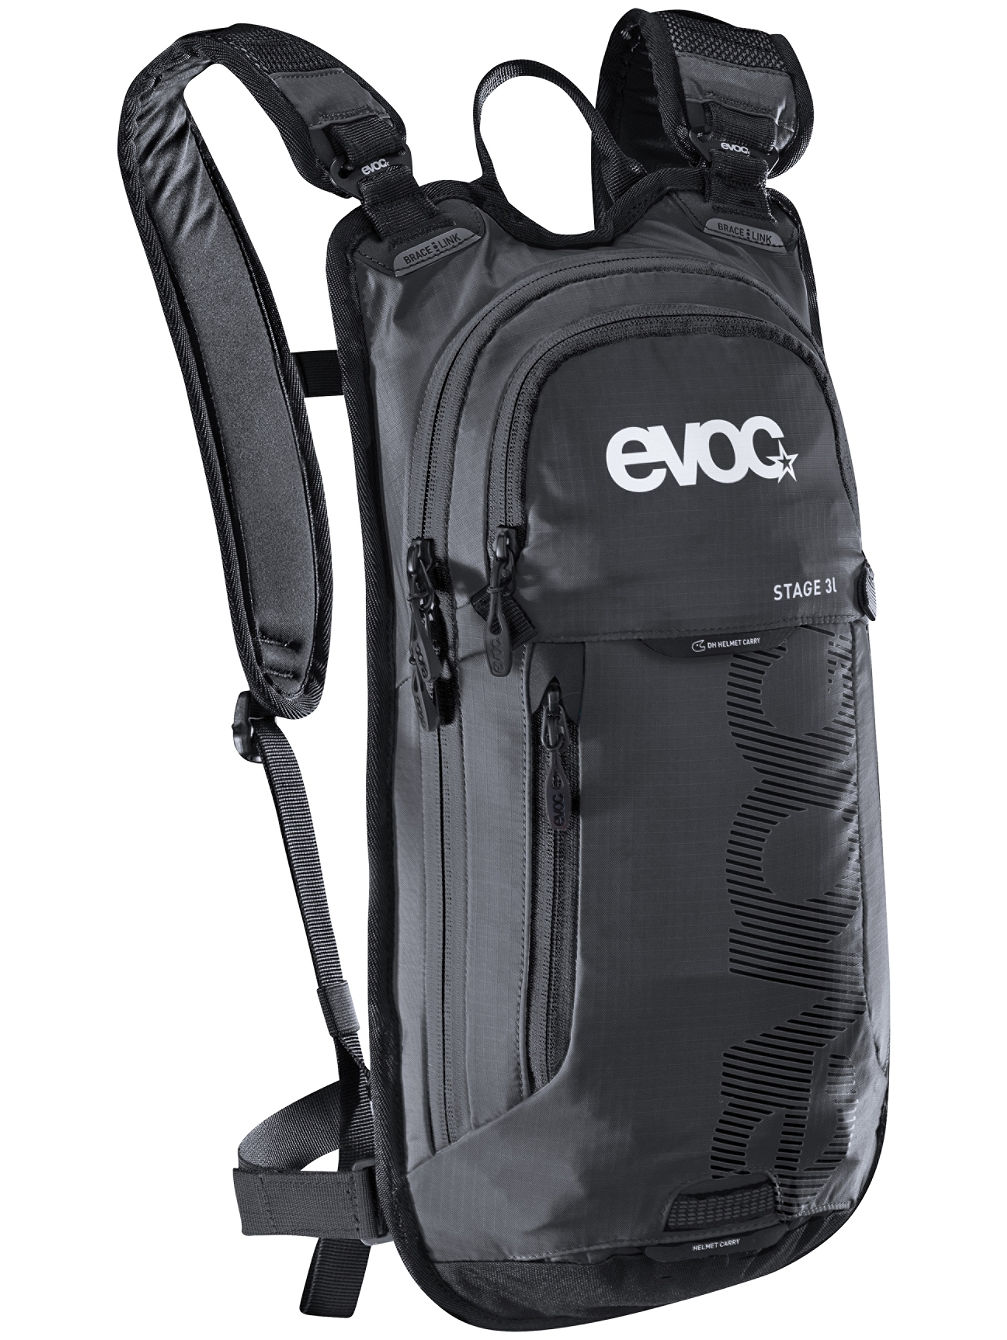 Stage 3L + 2L Bladder 3 L Backpack